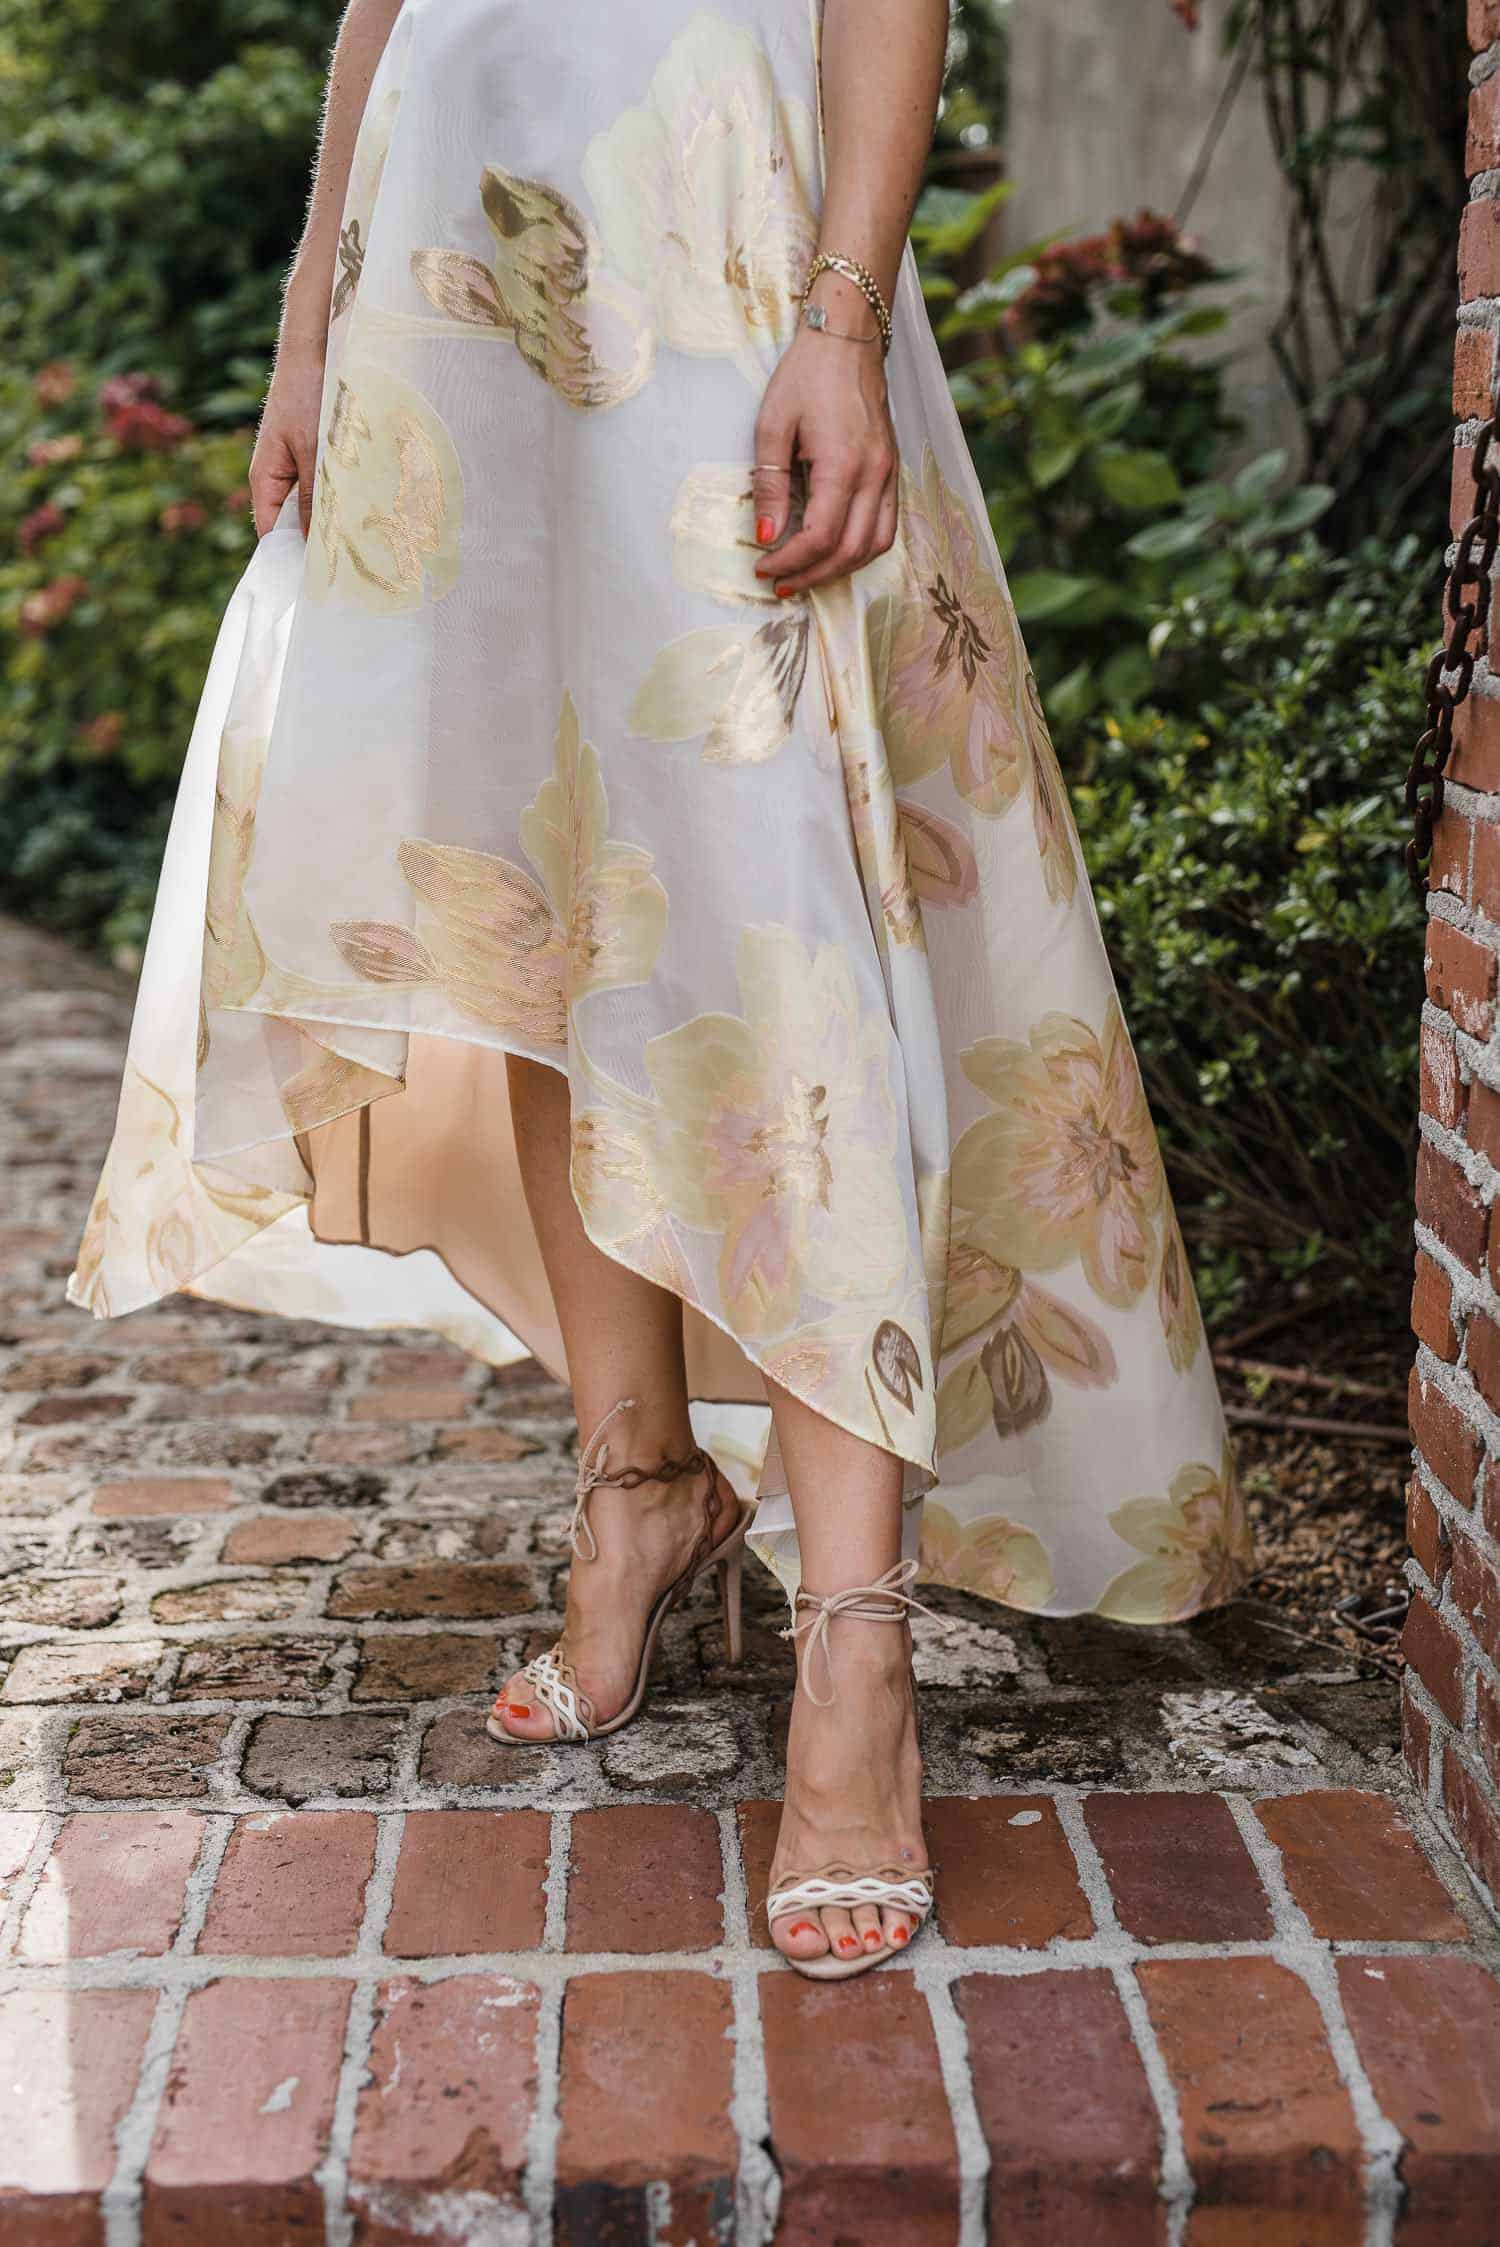 The Best Of Formal Wedding Guest Attire Ideas My Style Vita